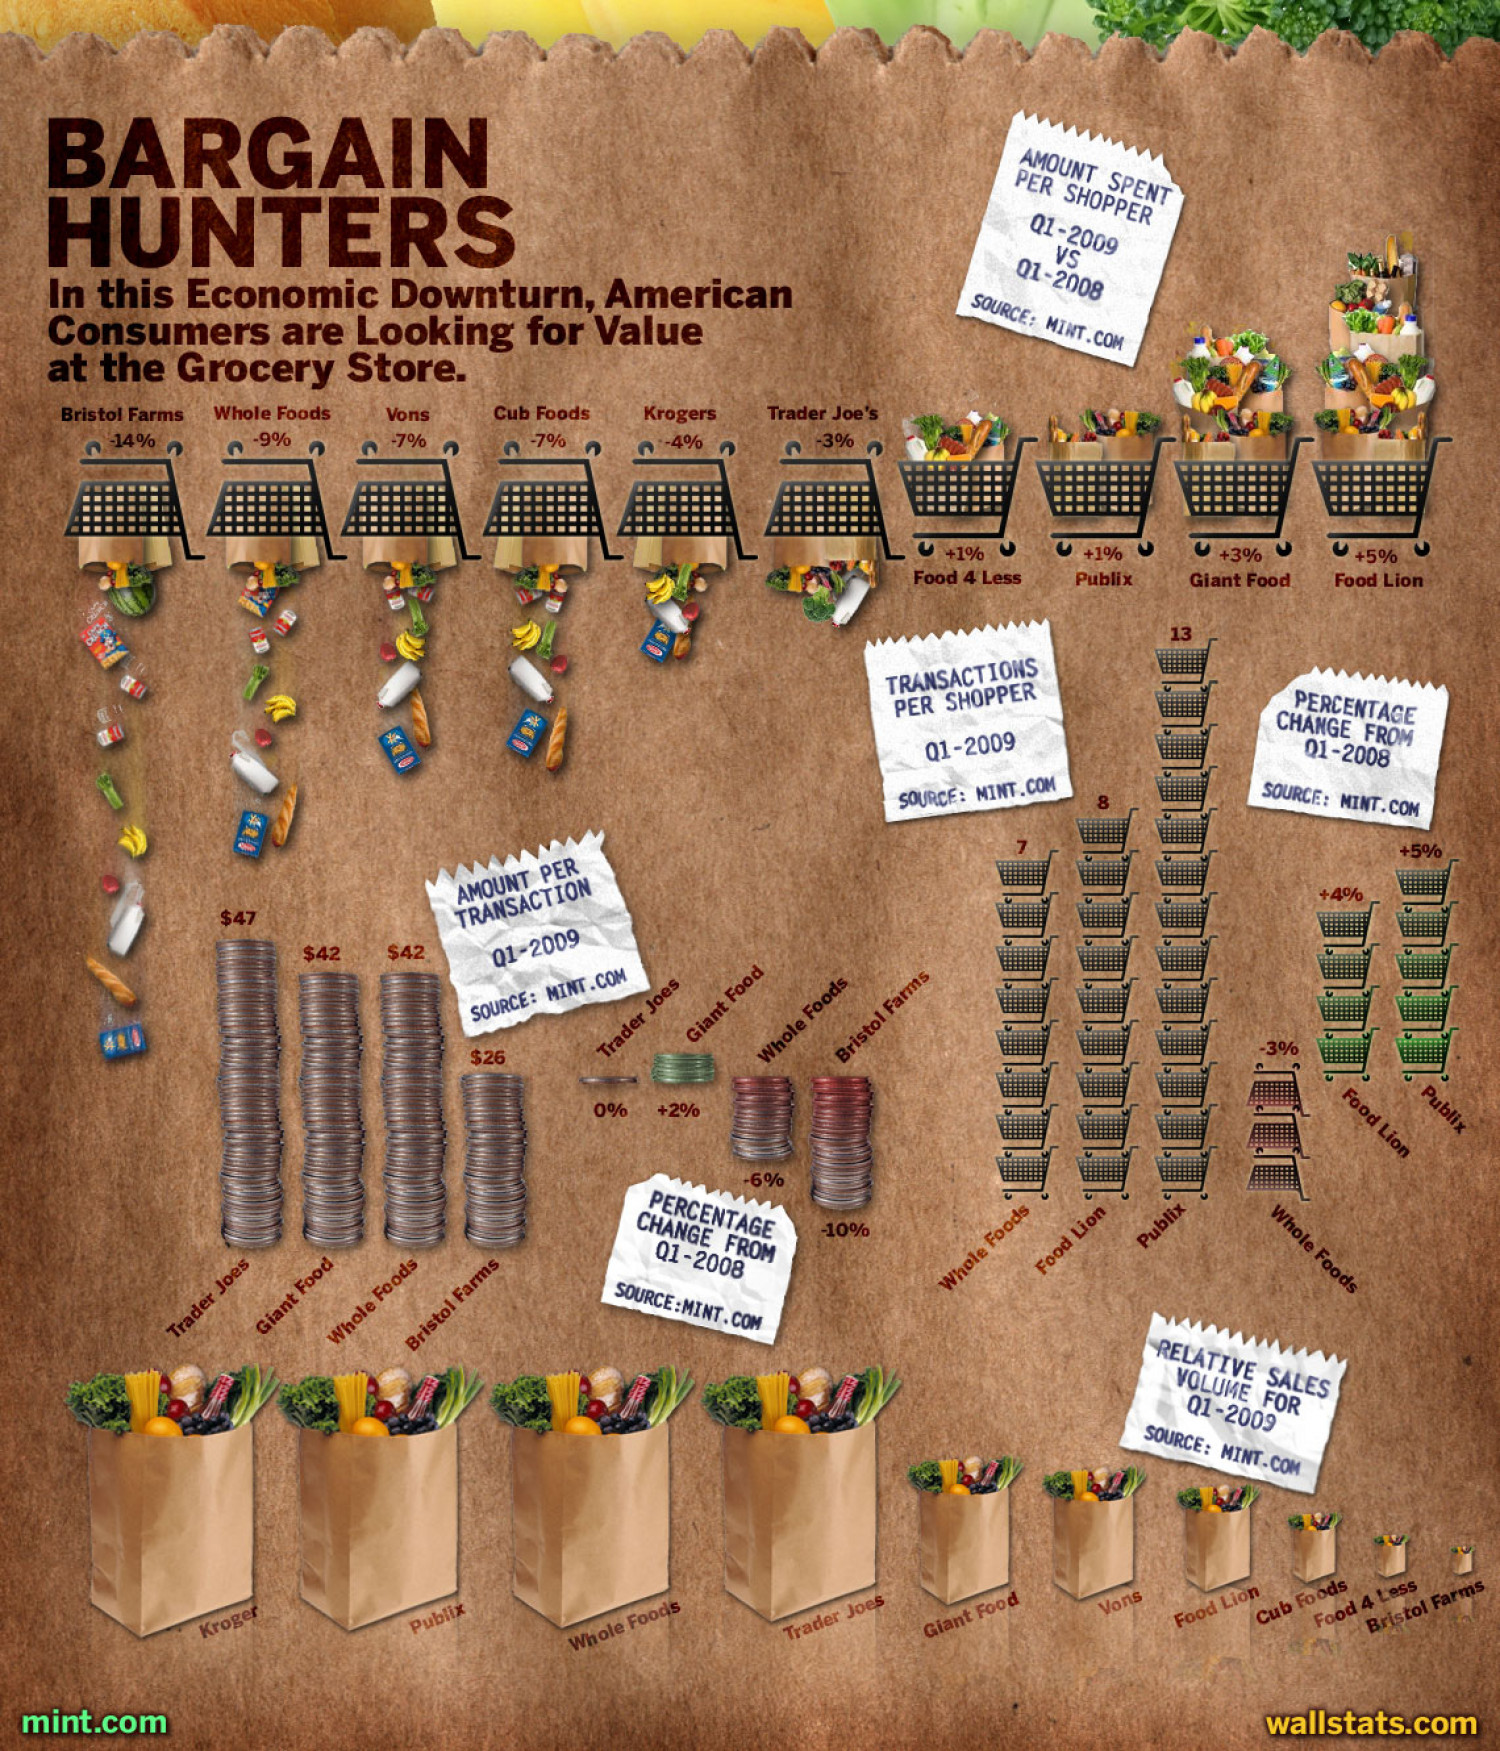 Bargain Hunters Infographic